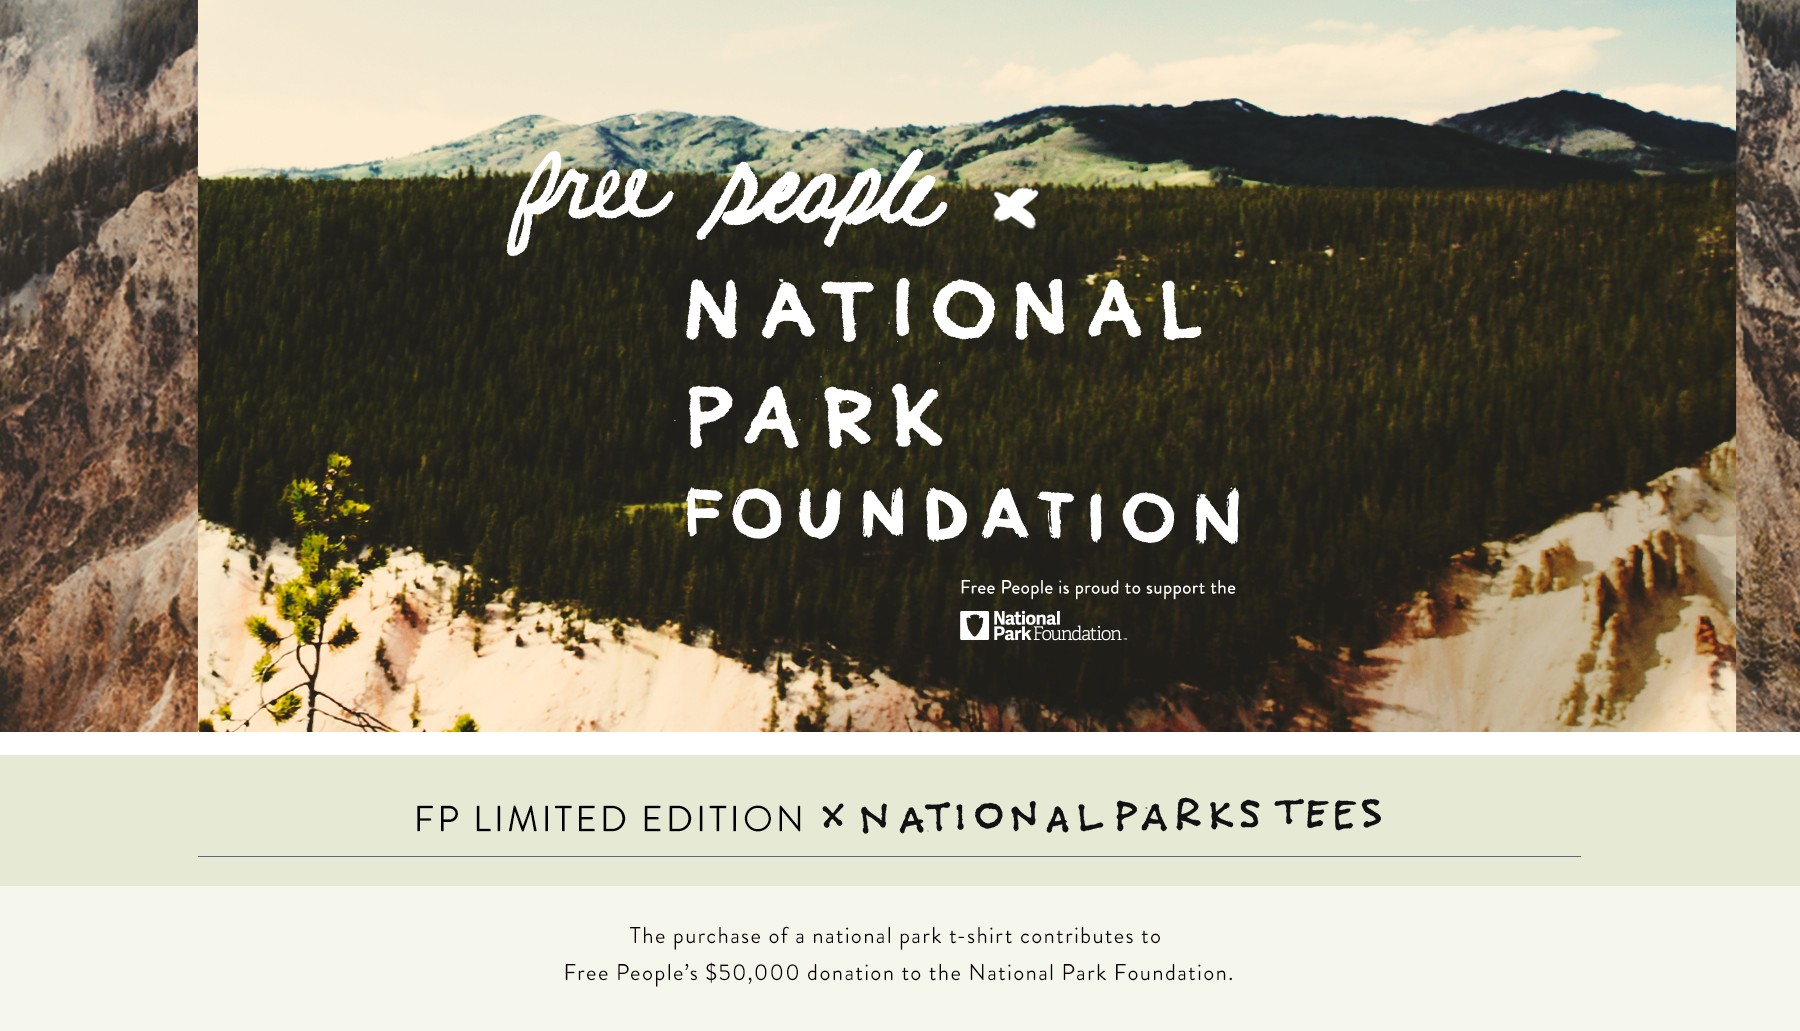 Free People x National Parks Foundation